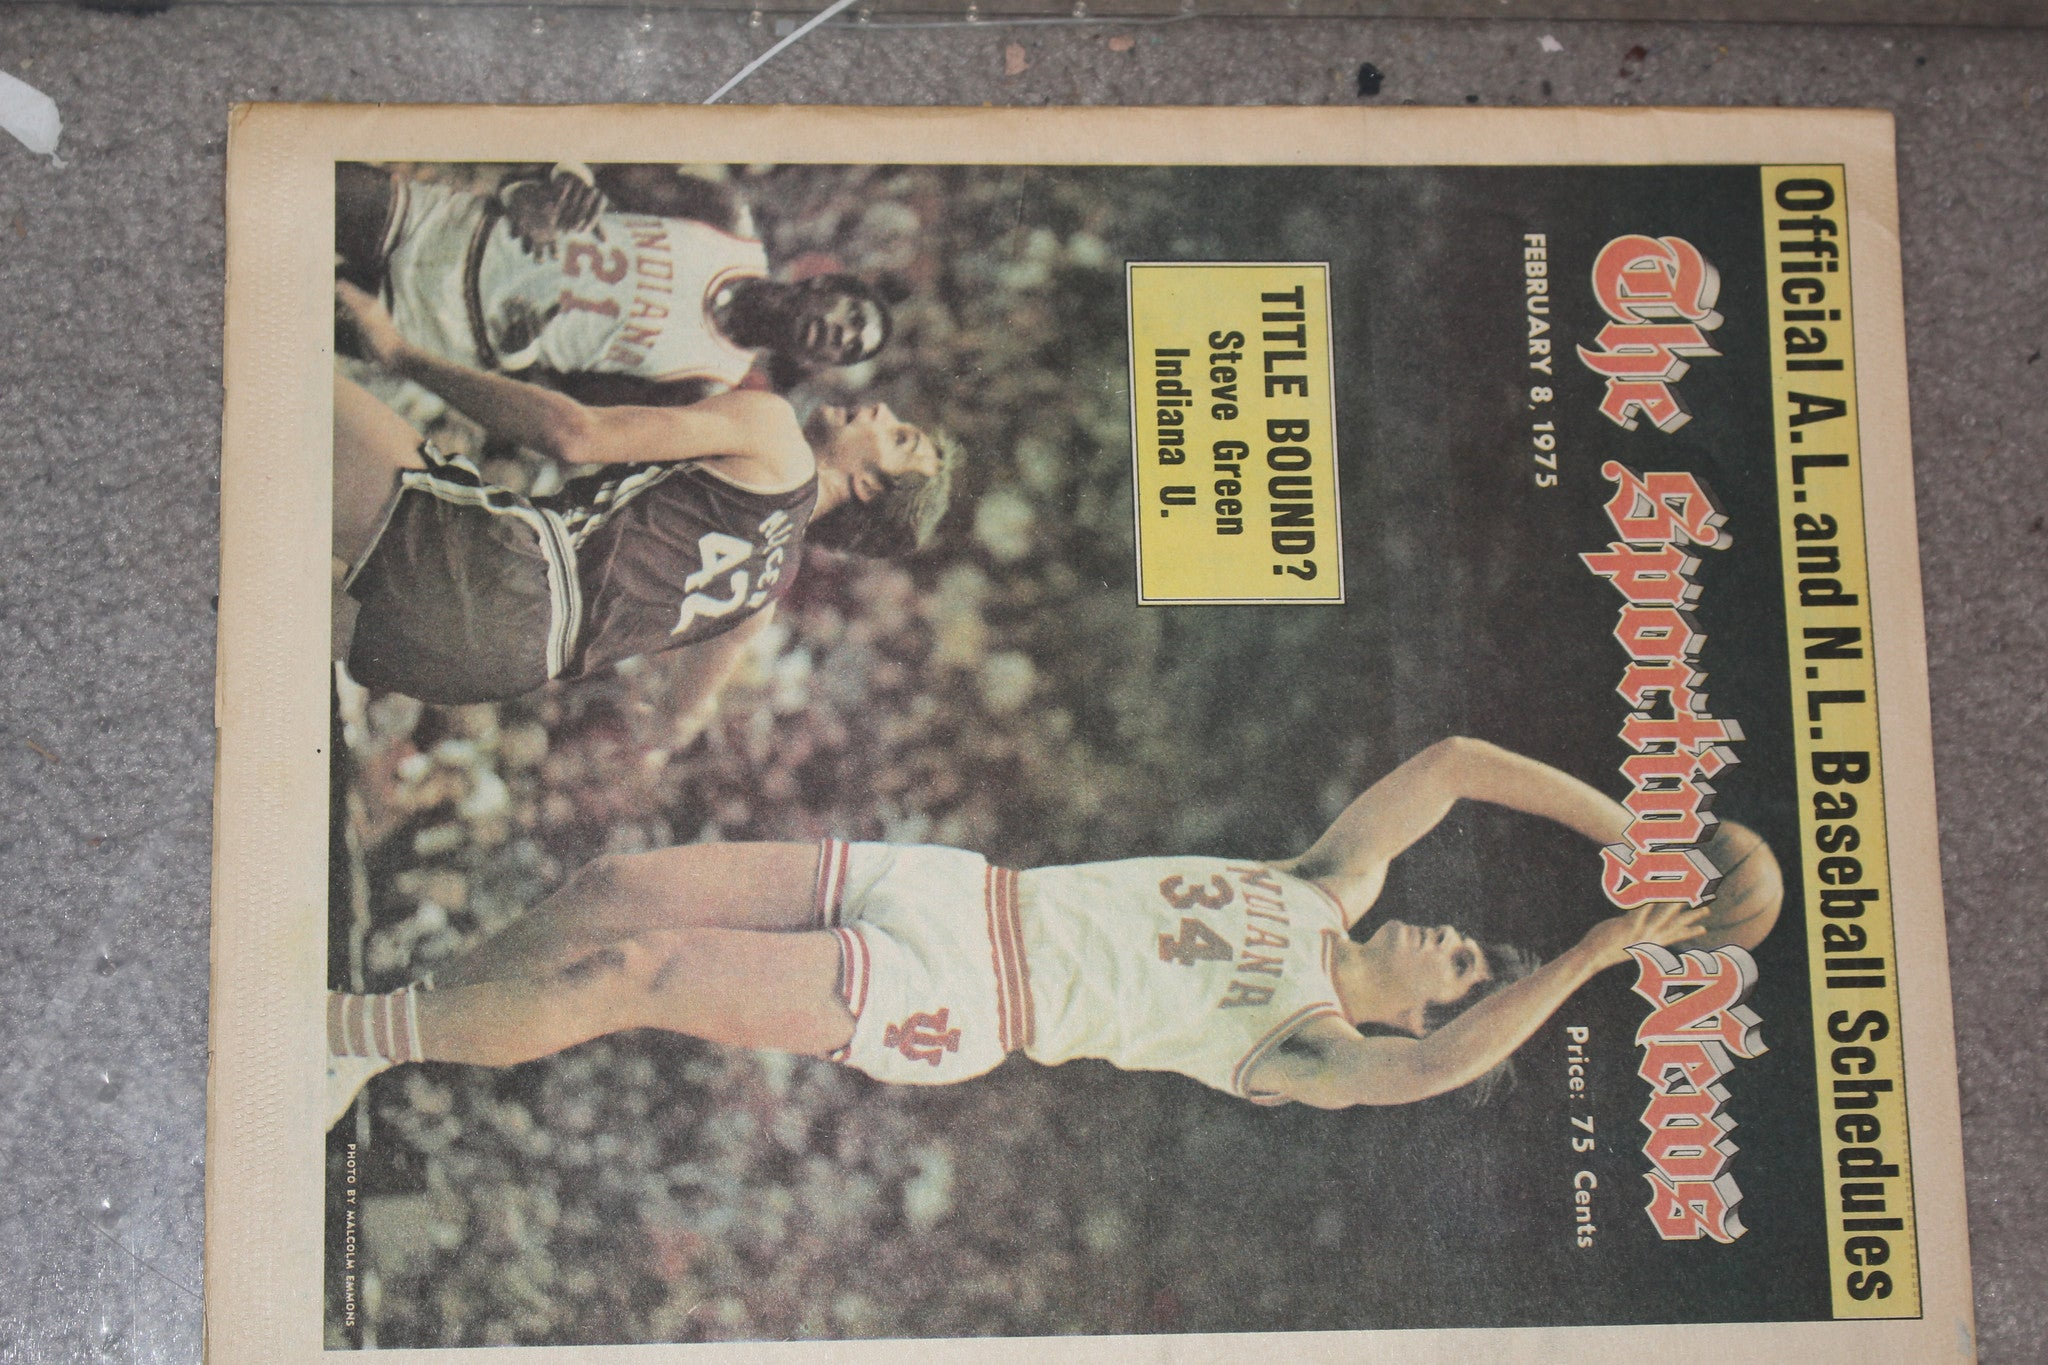 1975 Sporting News Magazine Steve Green Indiana University Basketball - Vintage Indy Sports